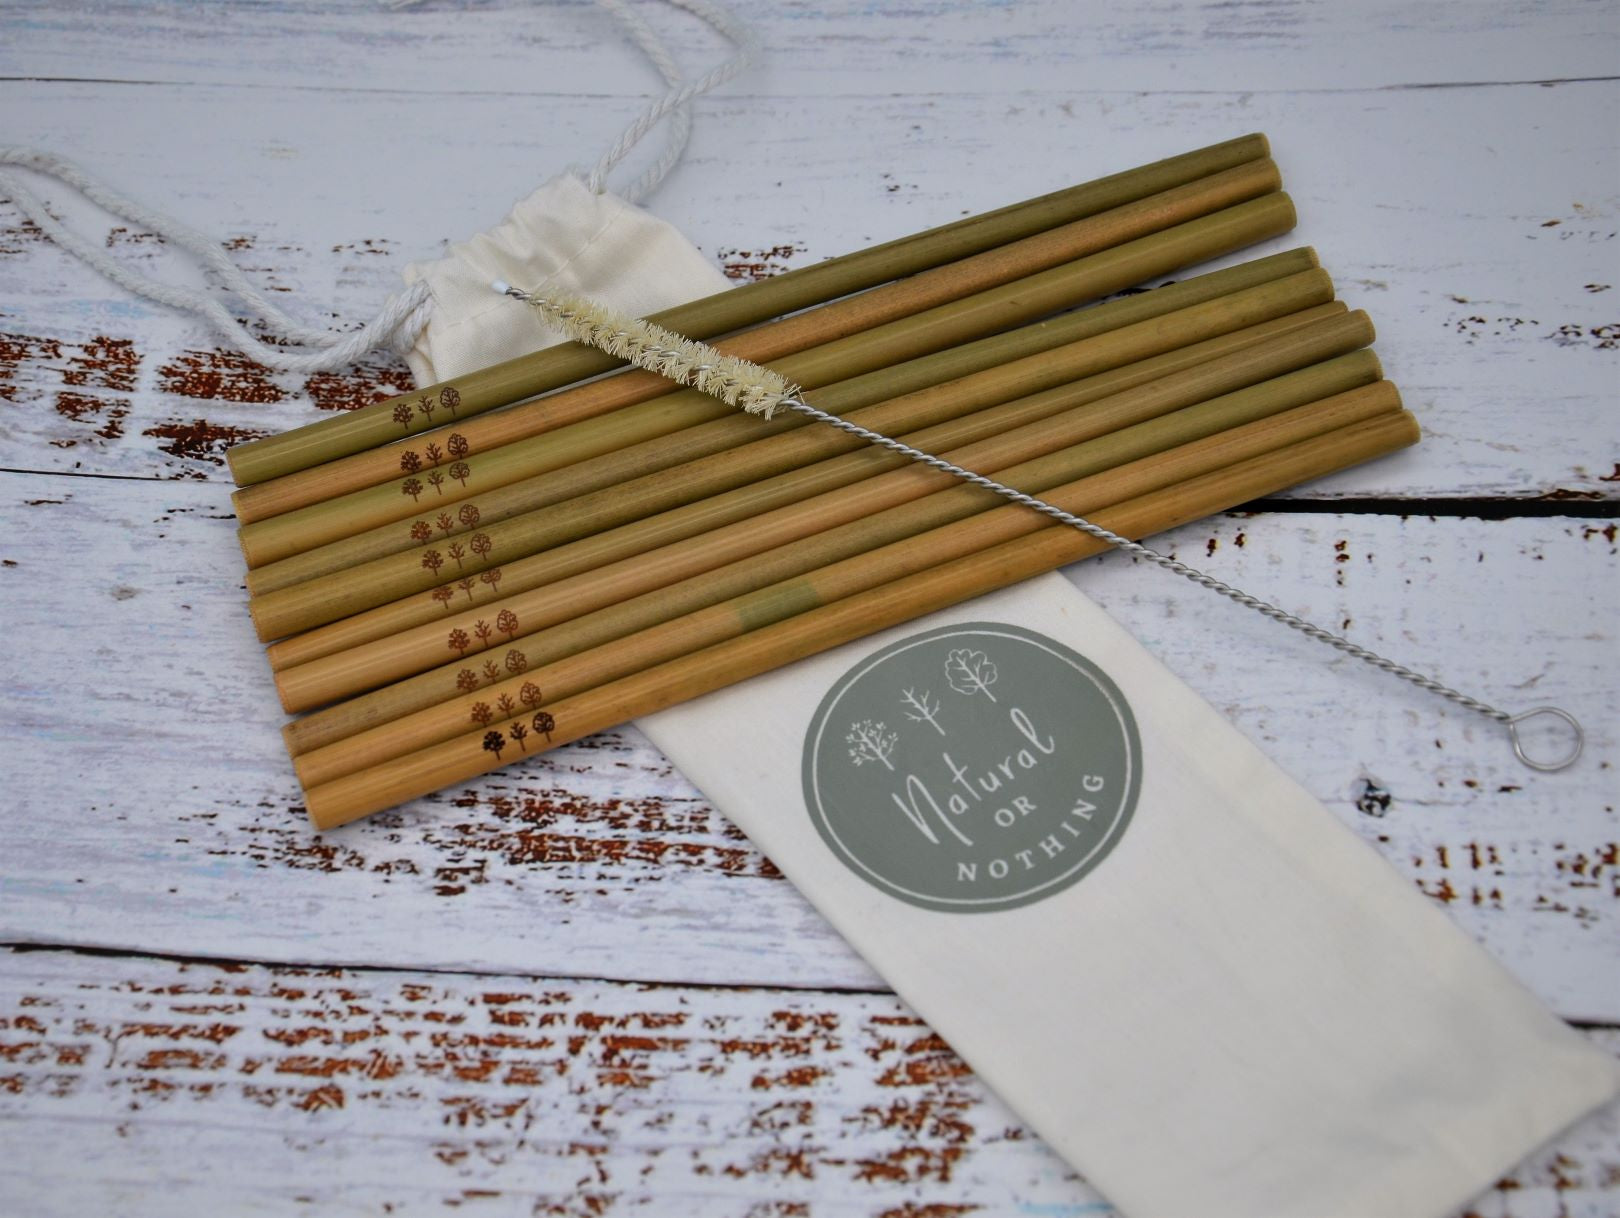 10 Bamboo straws laid over drawstring bag with sisal straw cleaner